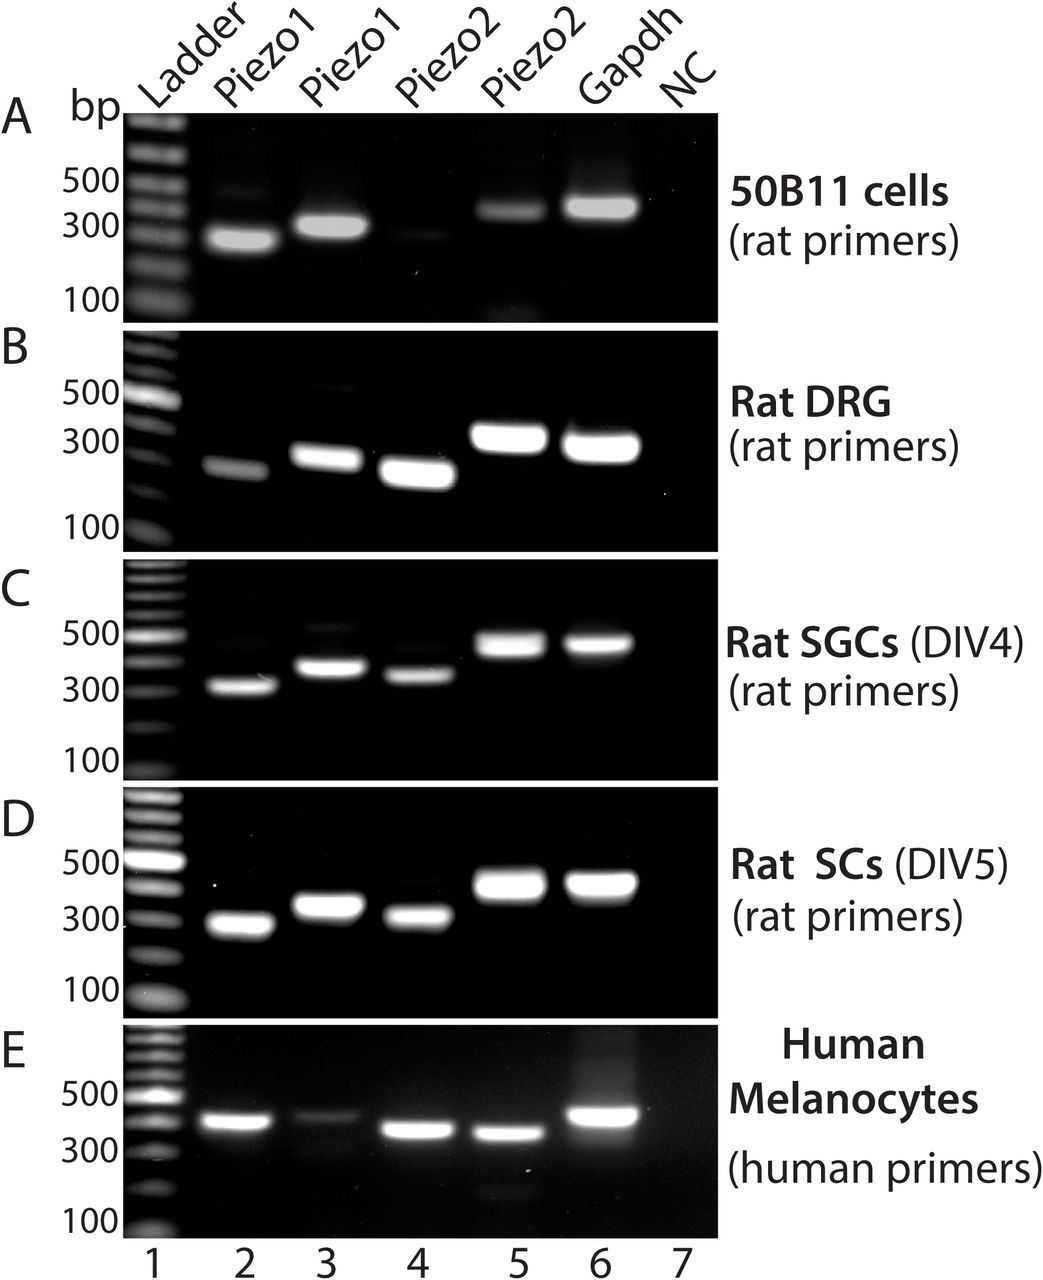 Validation of Piezos (2 and 1) expression by RT-PCR RT-PCR shows amplification of Piezo1 and Piezo2 transcripts in rat 50B11 cells ( A ), rat DRG ( B ), rat primary cultured SGCs at day of in vitro 4 (DIV, C ), and rat primary cultured Schwann cells at DIV5 ( D ) by two different primer pairs specific for amplification of rat Piezo1 and Piezo2 transcripts, as well as detection of Piezo1 and Piezo2 transcripts by two different primer pairs specific for human Piezo1 and 2 in human primary cultured melanocytes ( E ). Lane 1: ladder, lane 2-3: Piezo1 amplified by two piezo1 primer pairs ( A-D , rat; E , human), lane 3-4: Piezo2 amplified by two piezo2 primer pairs ( A-D , rat; E , human), lane 7: Gapdh, and lane 8: negative control.